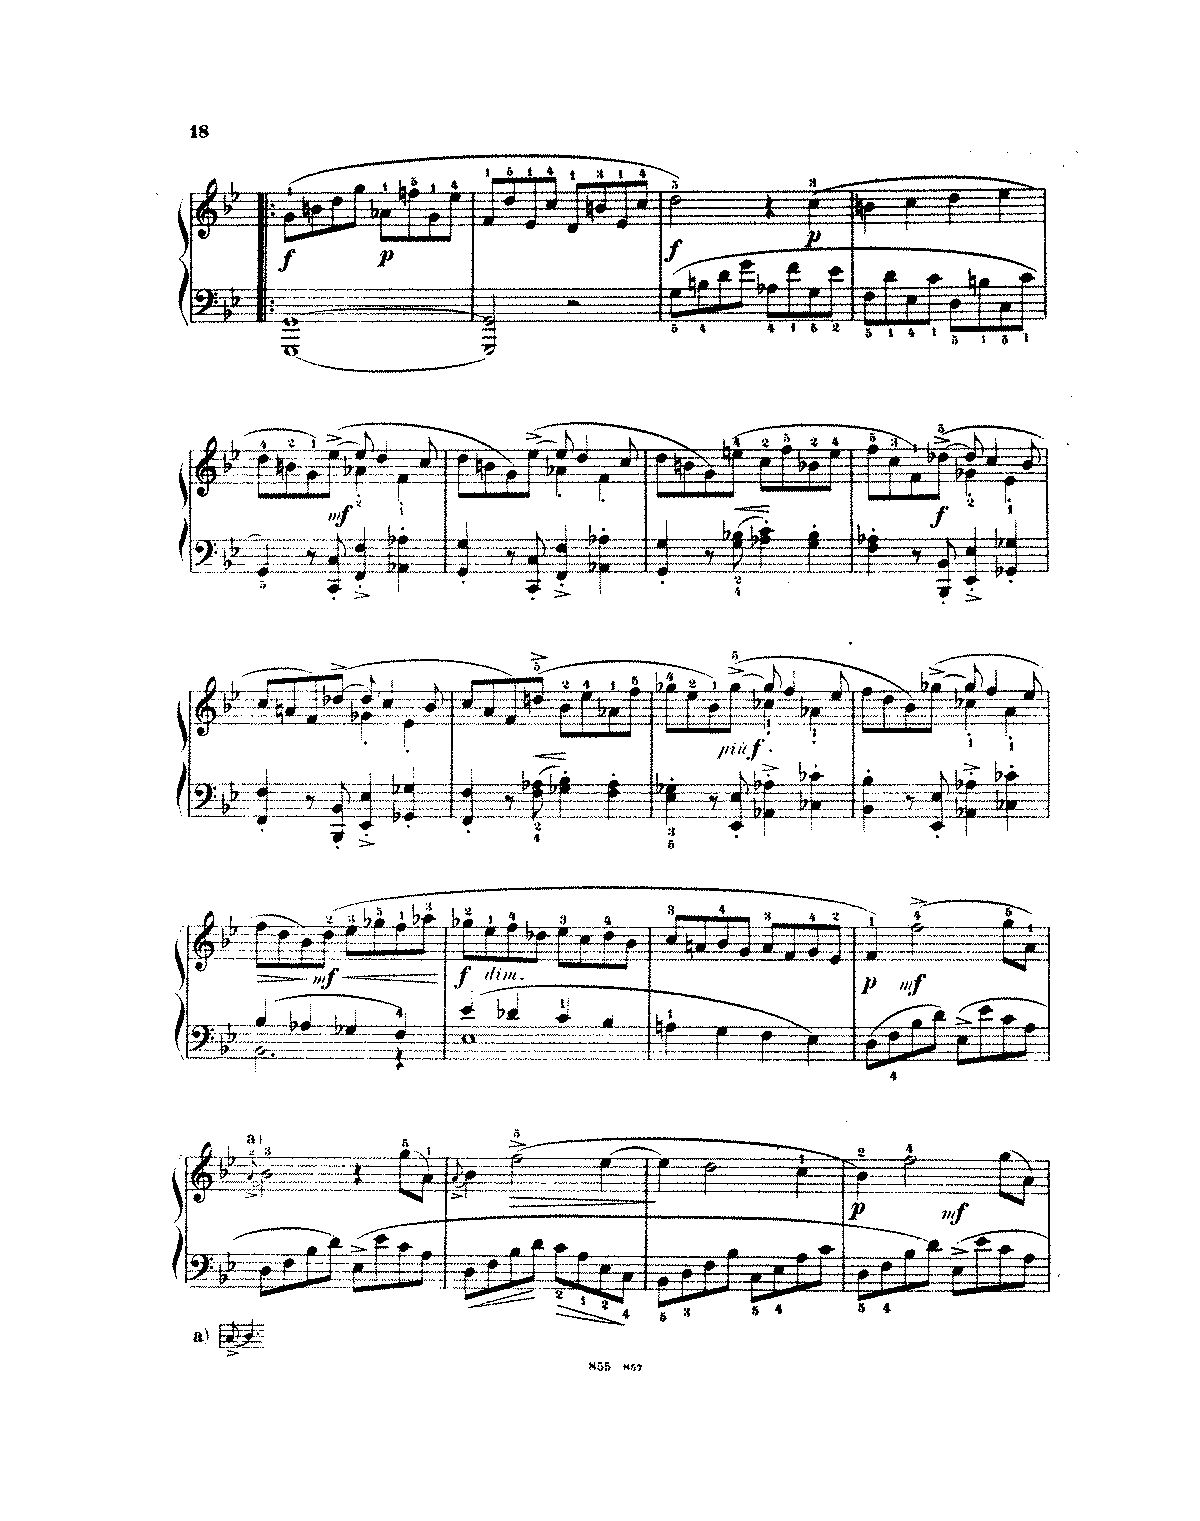 PMLP330561-Sibley1802.22722 - No. 7 - Sonata in F minor, K. 19.pdf